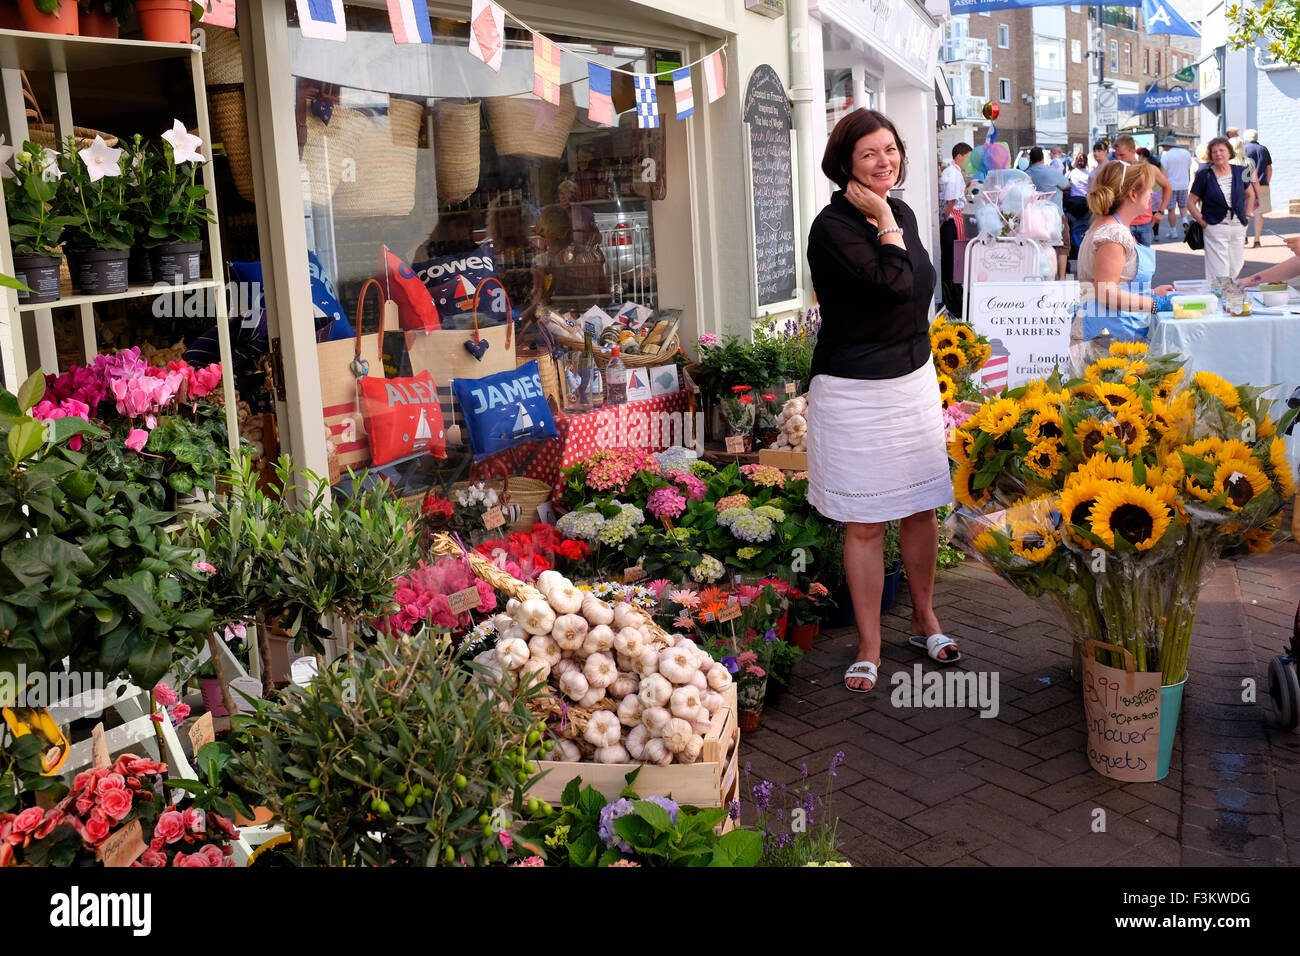 Cowes Week, 2015, Isle of Wight French themed shop with flowers produce outside The High Street Yacht Racing, Shore - Stock Image